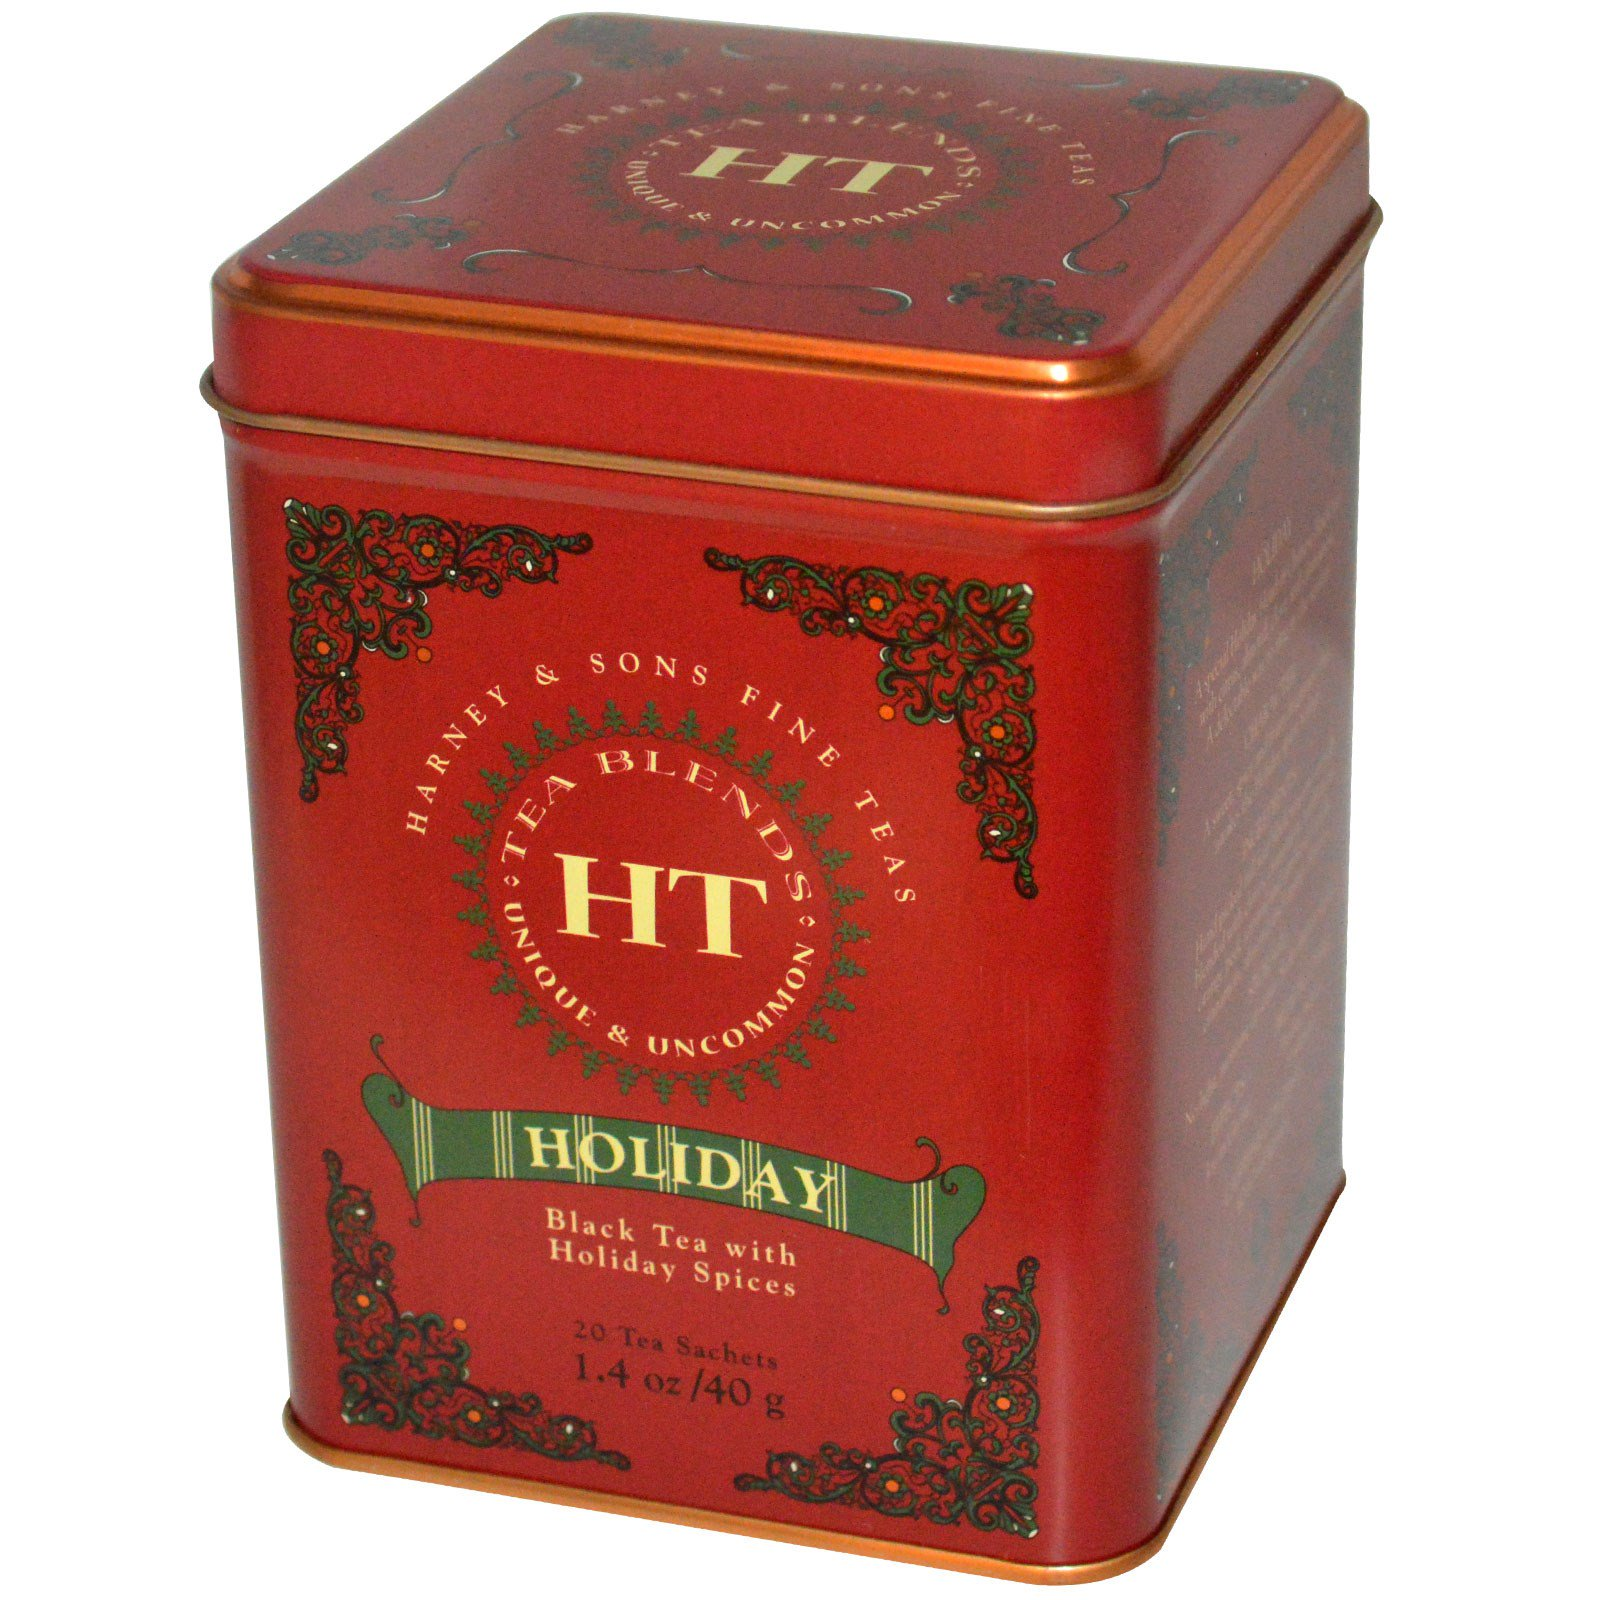 Harney & Sons, Black Tea with Holiday Spices, 20 Sachets, 1.4 oz (40 g) (Discontinued Item)